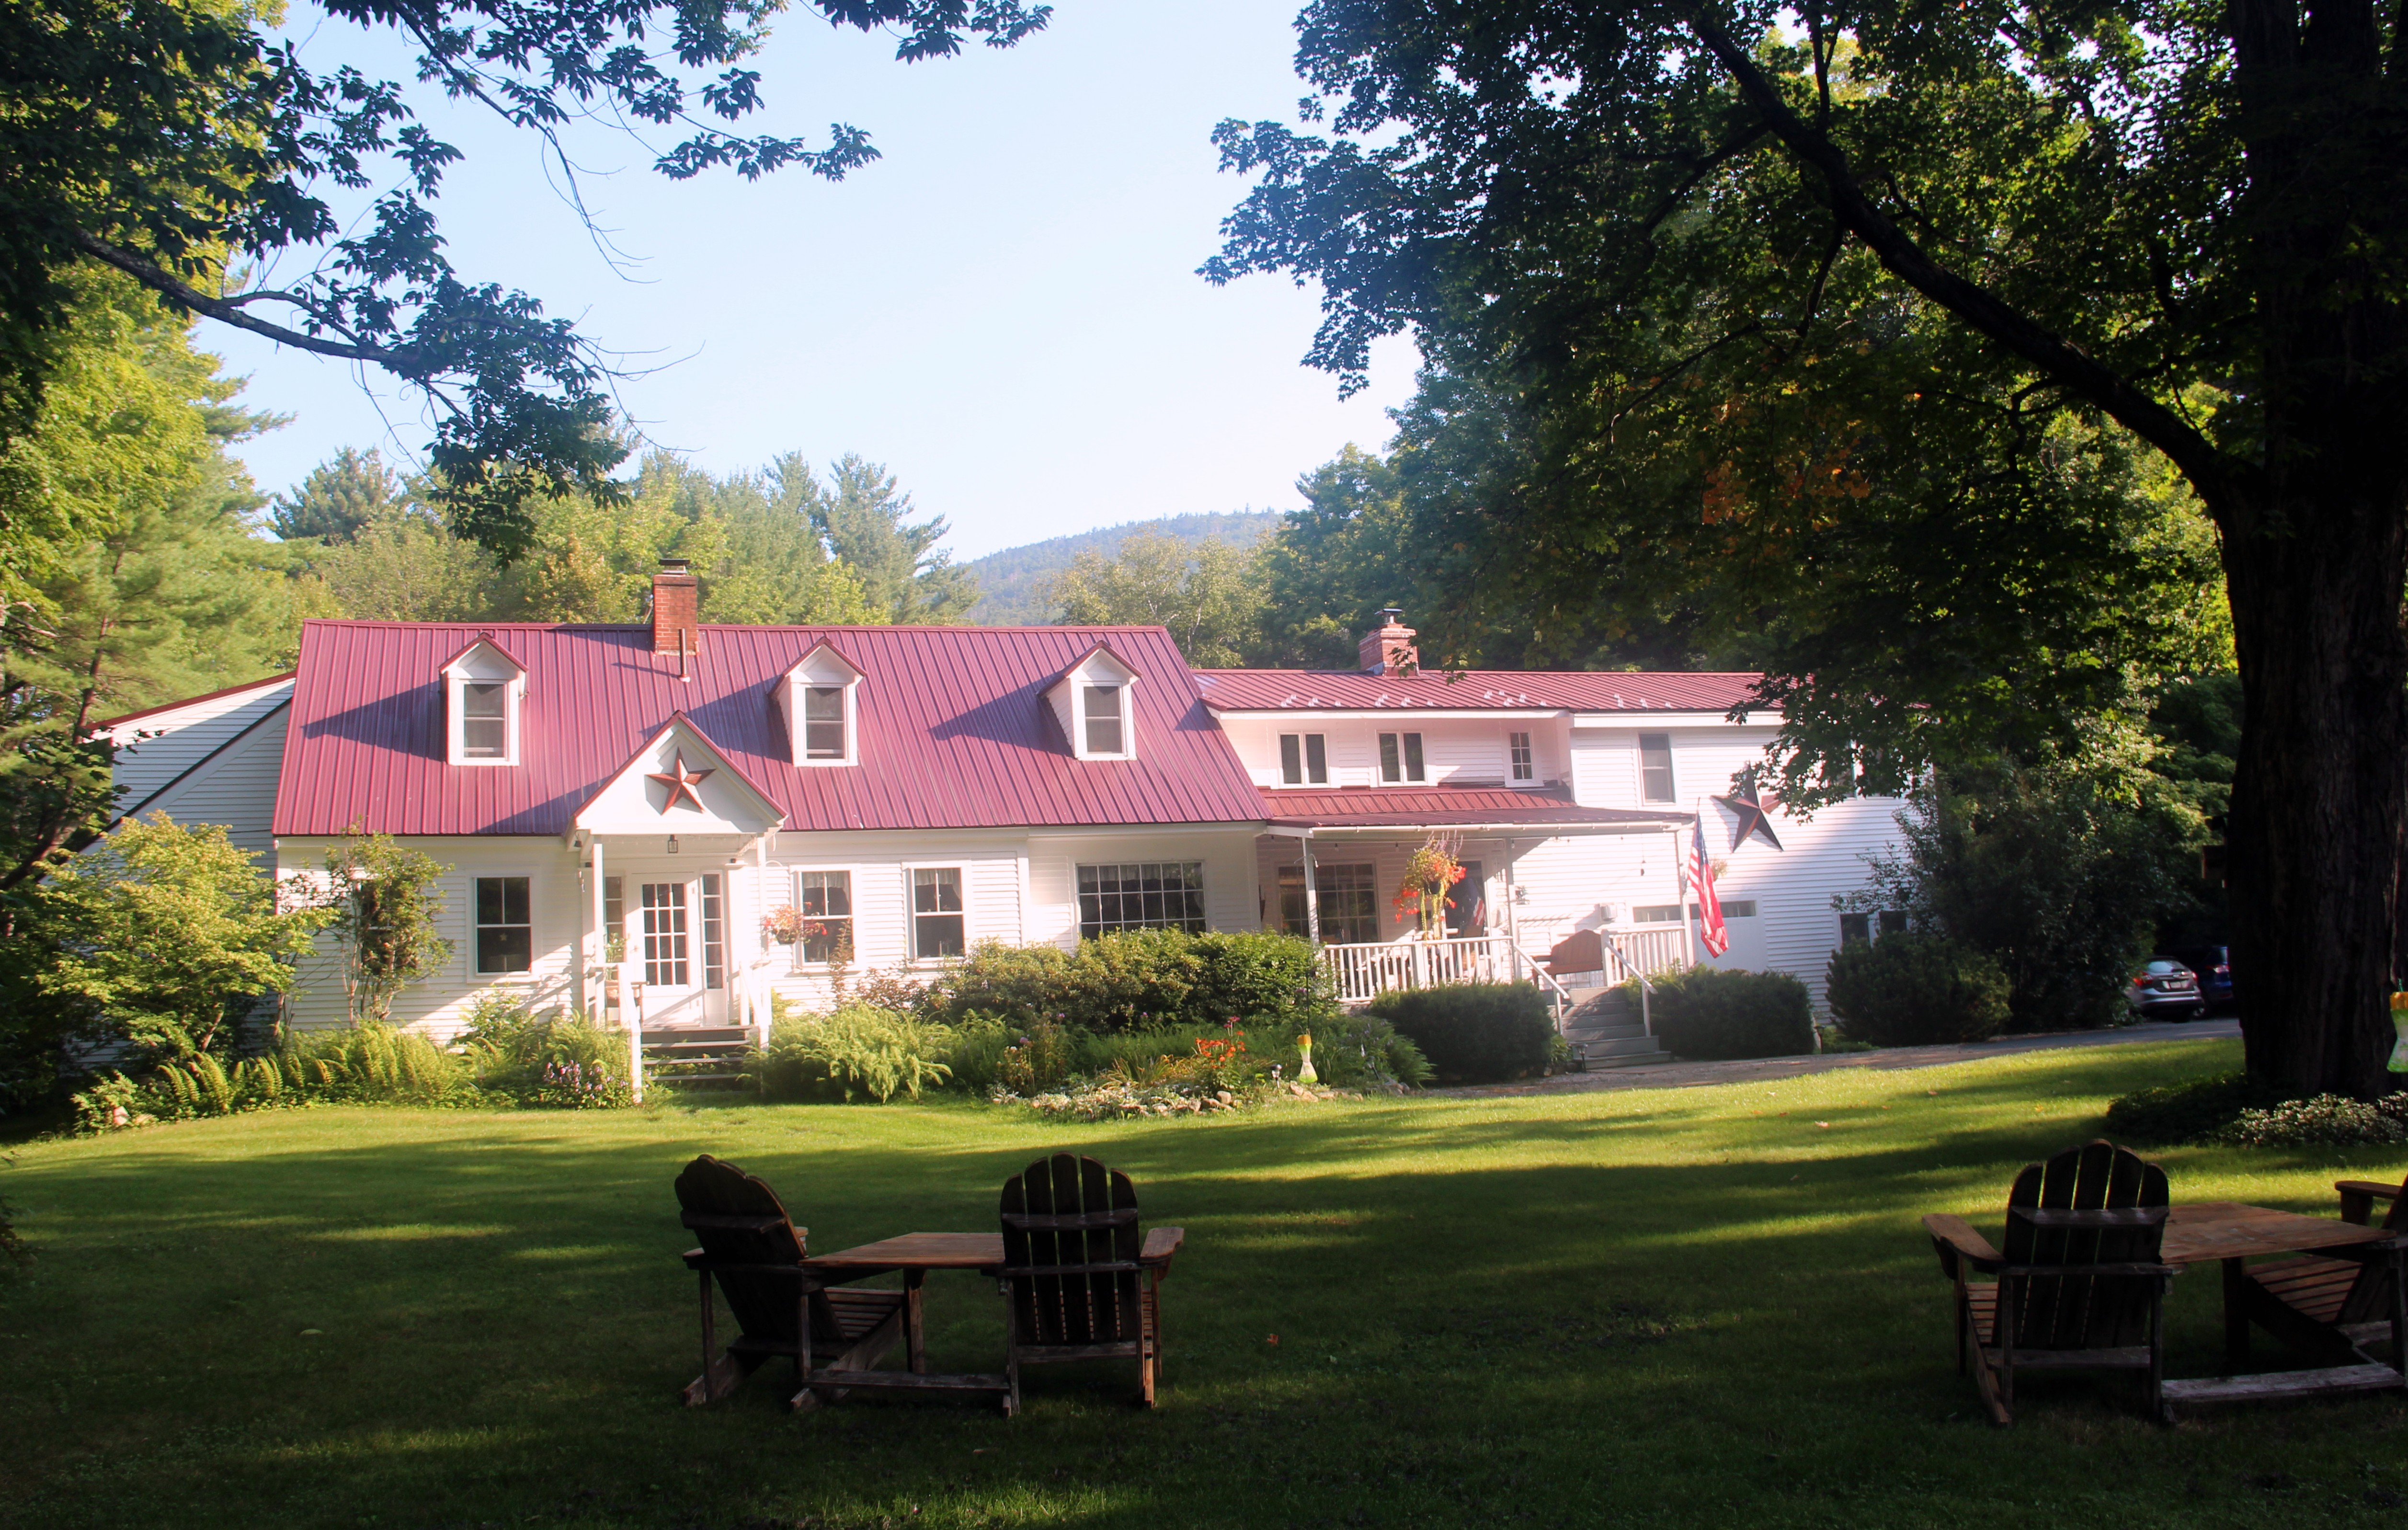 The Buttonwood Inn on Mt. Surprise